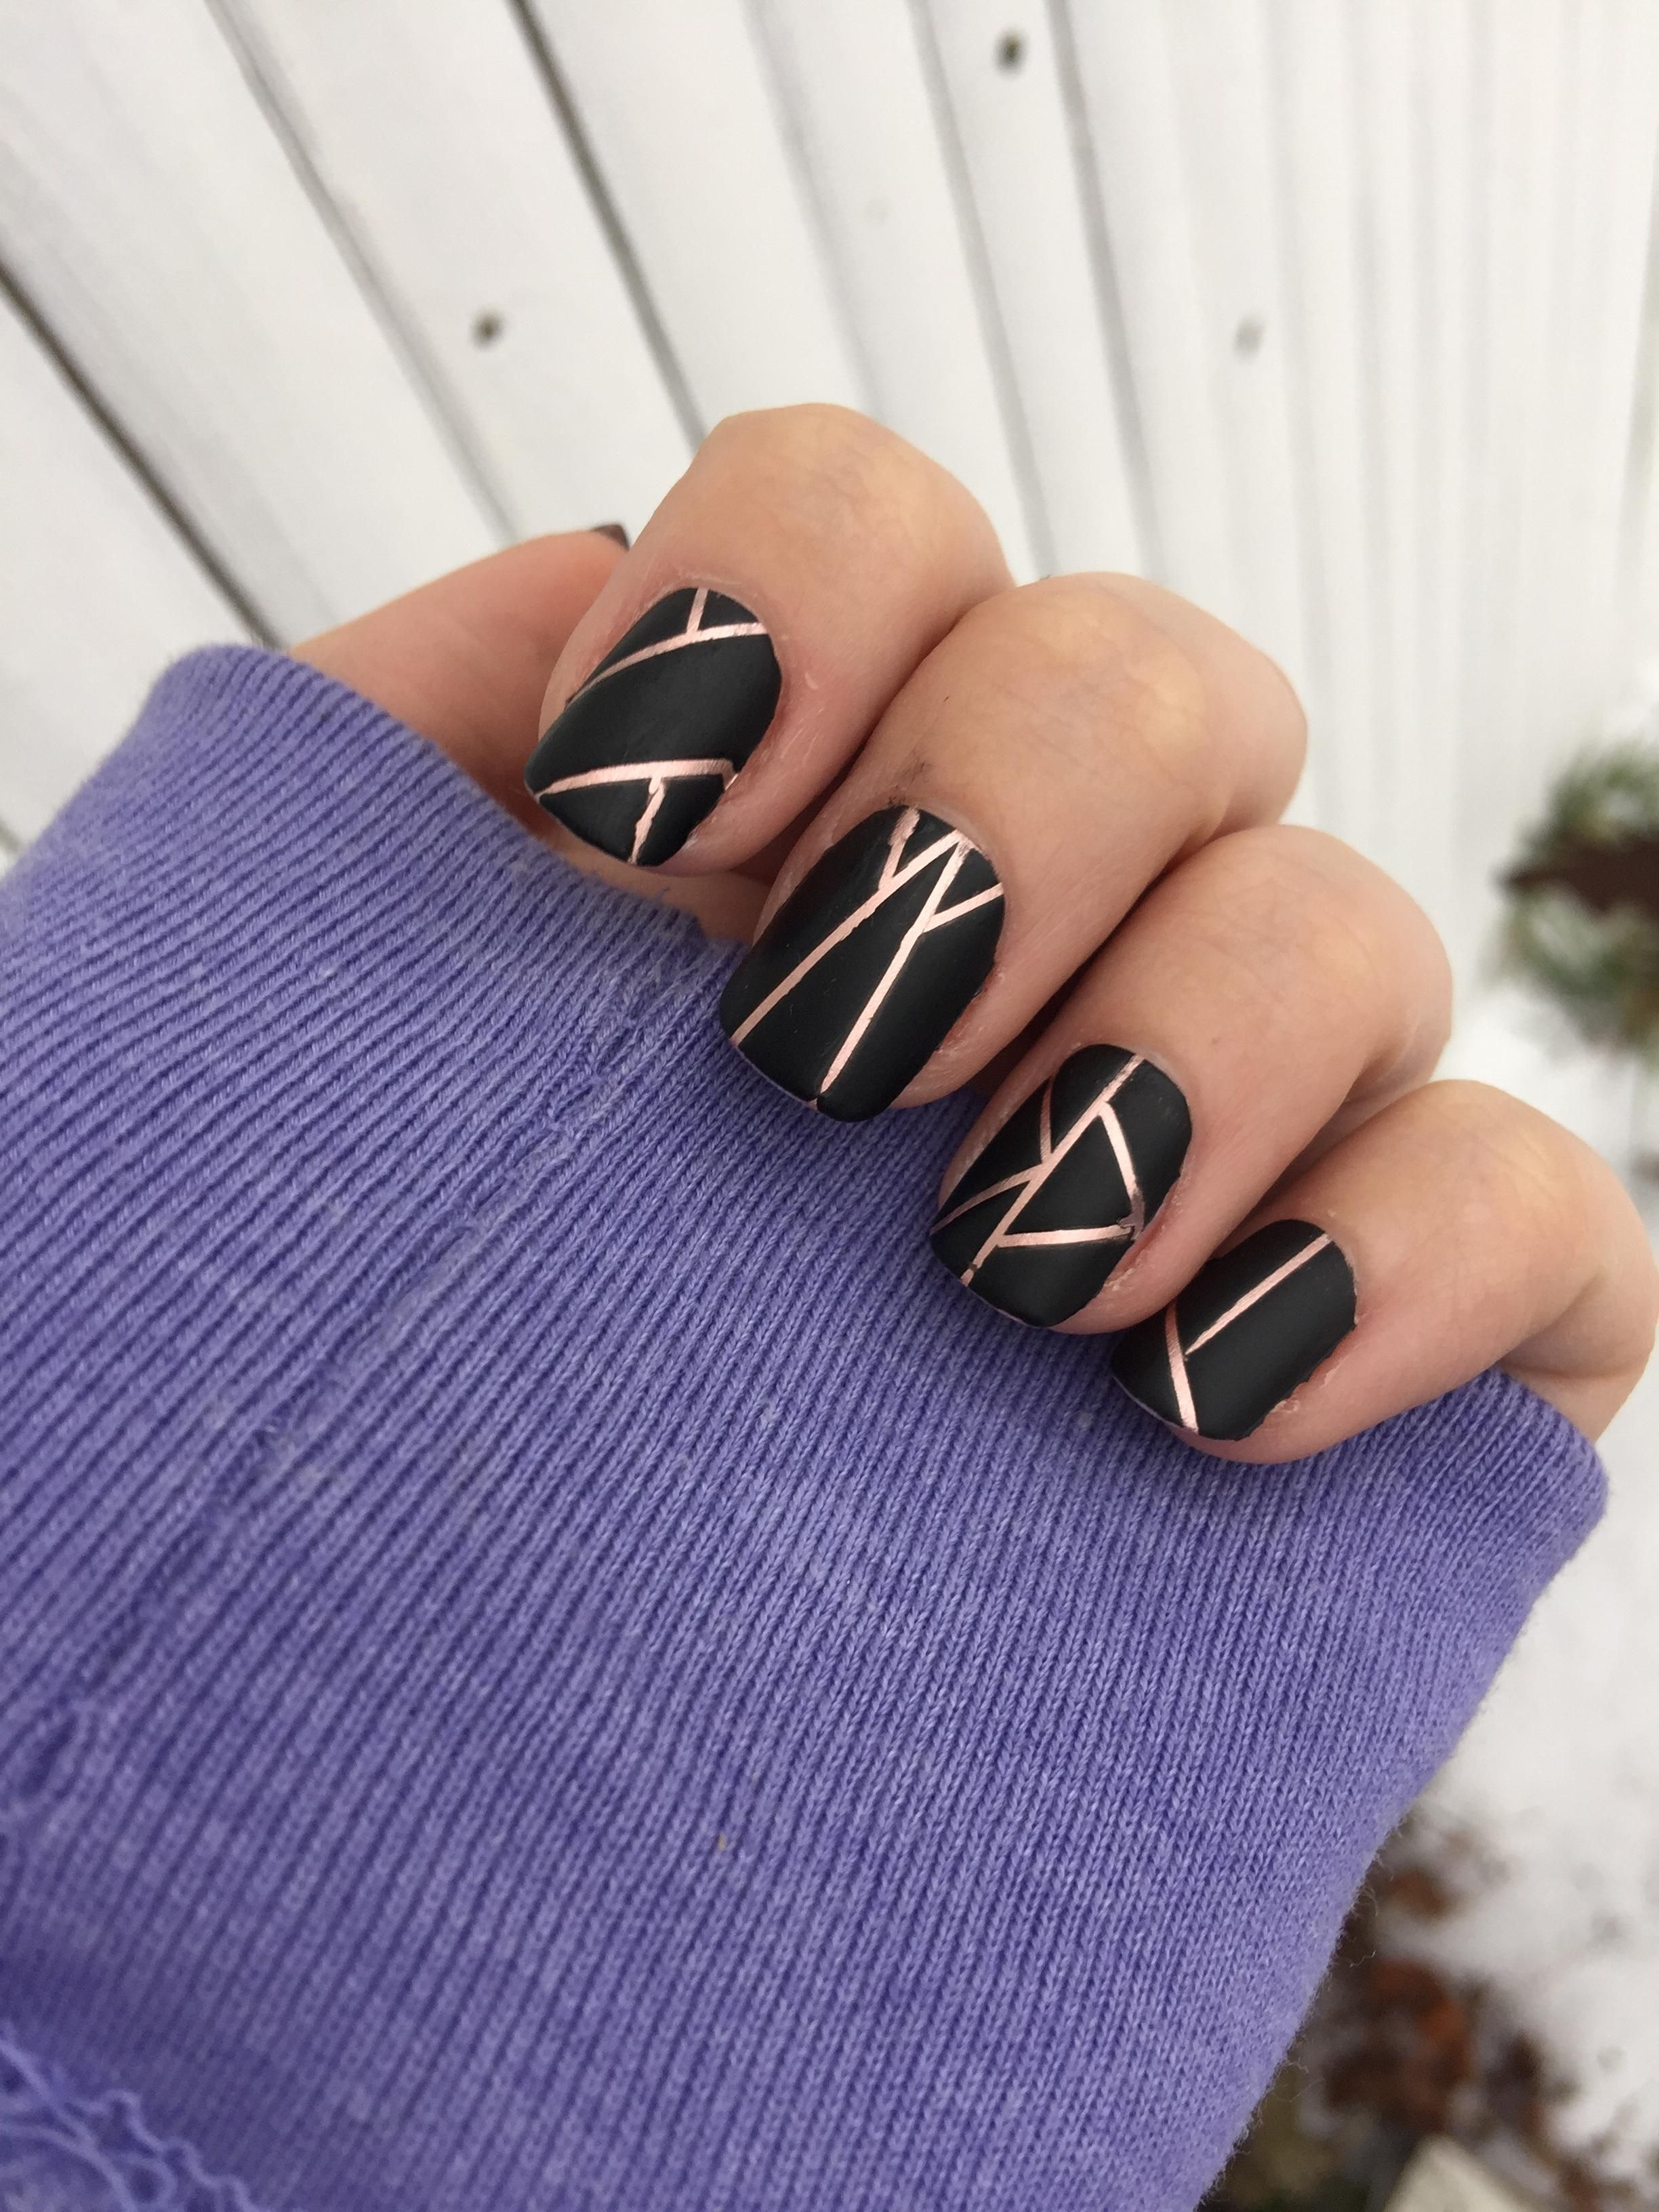 The most awesome images on the Internet | Matte top coats, Top coat ...